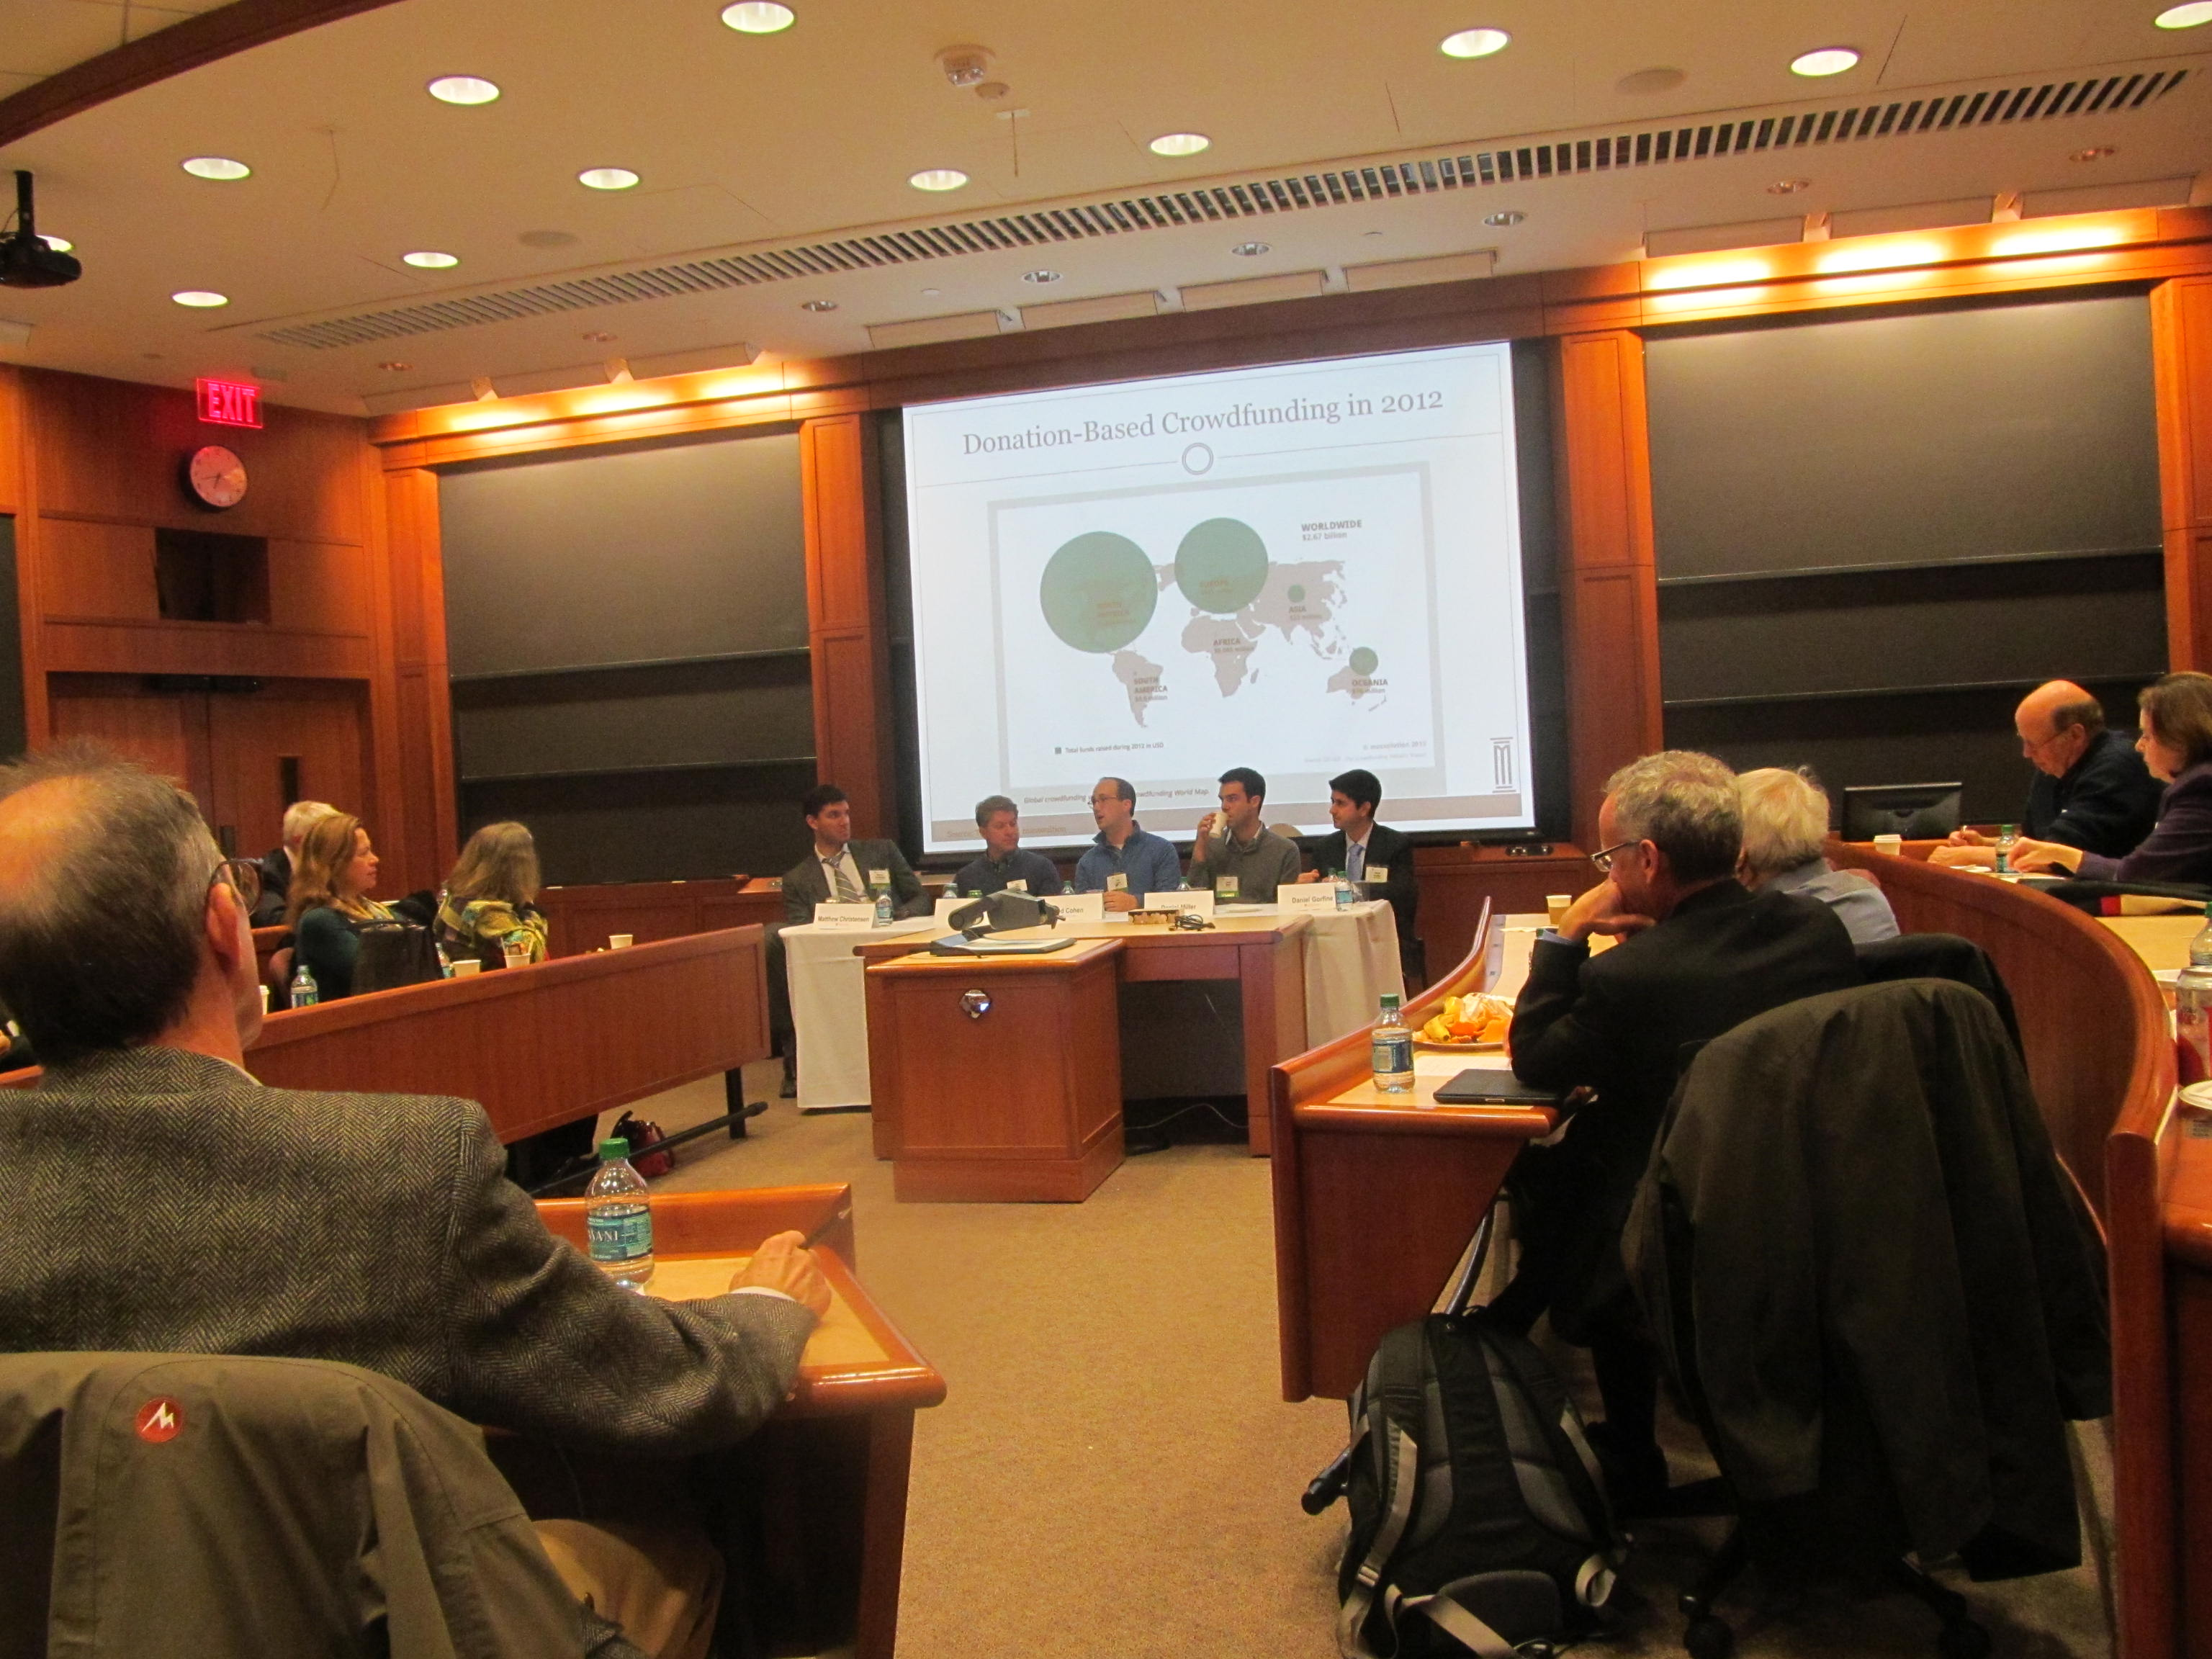 crowdfunding panel at HBS